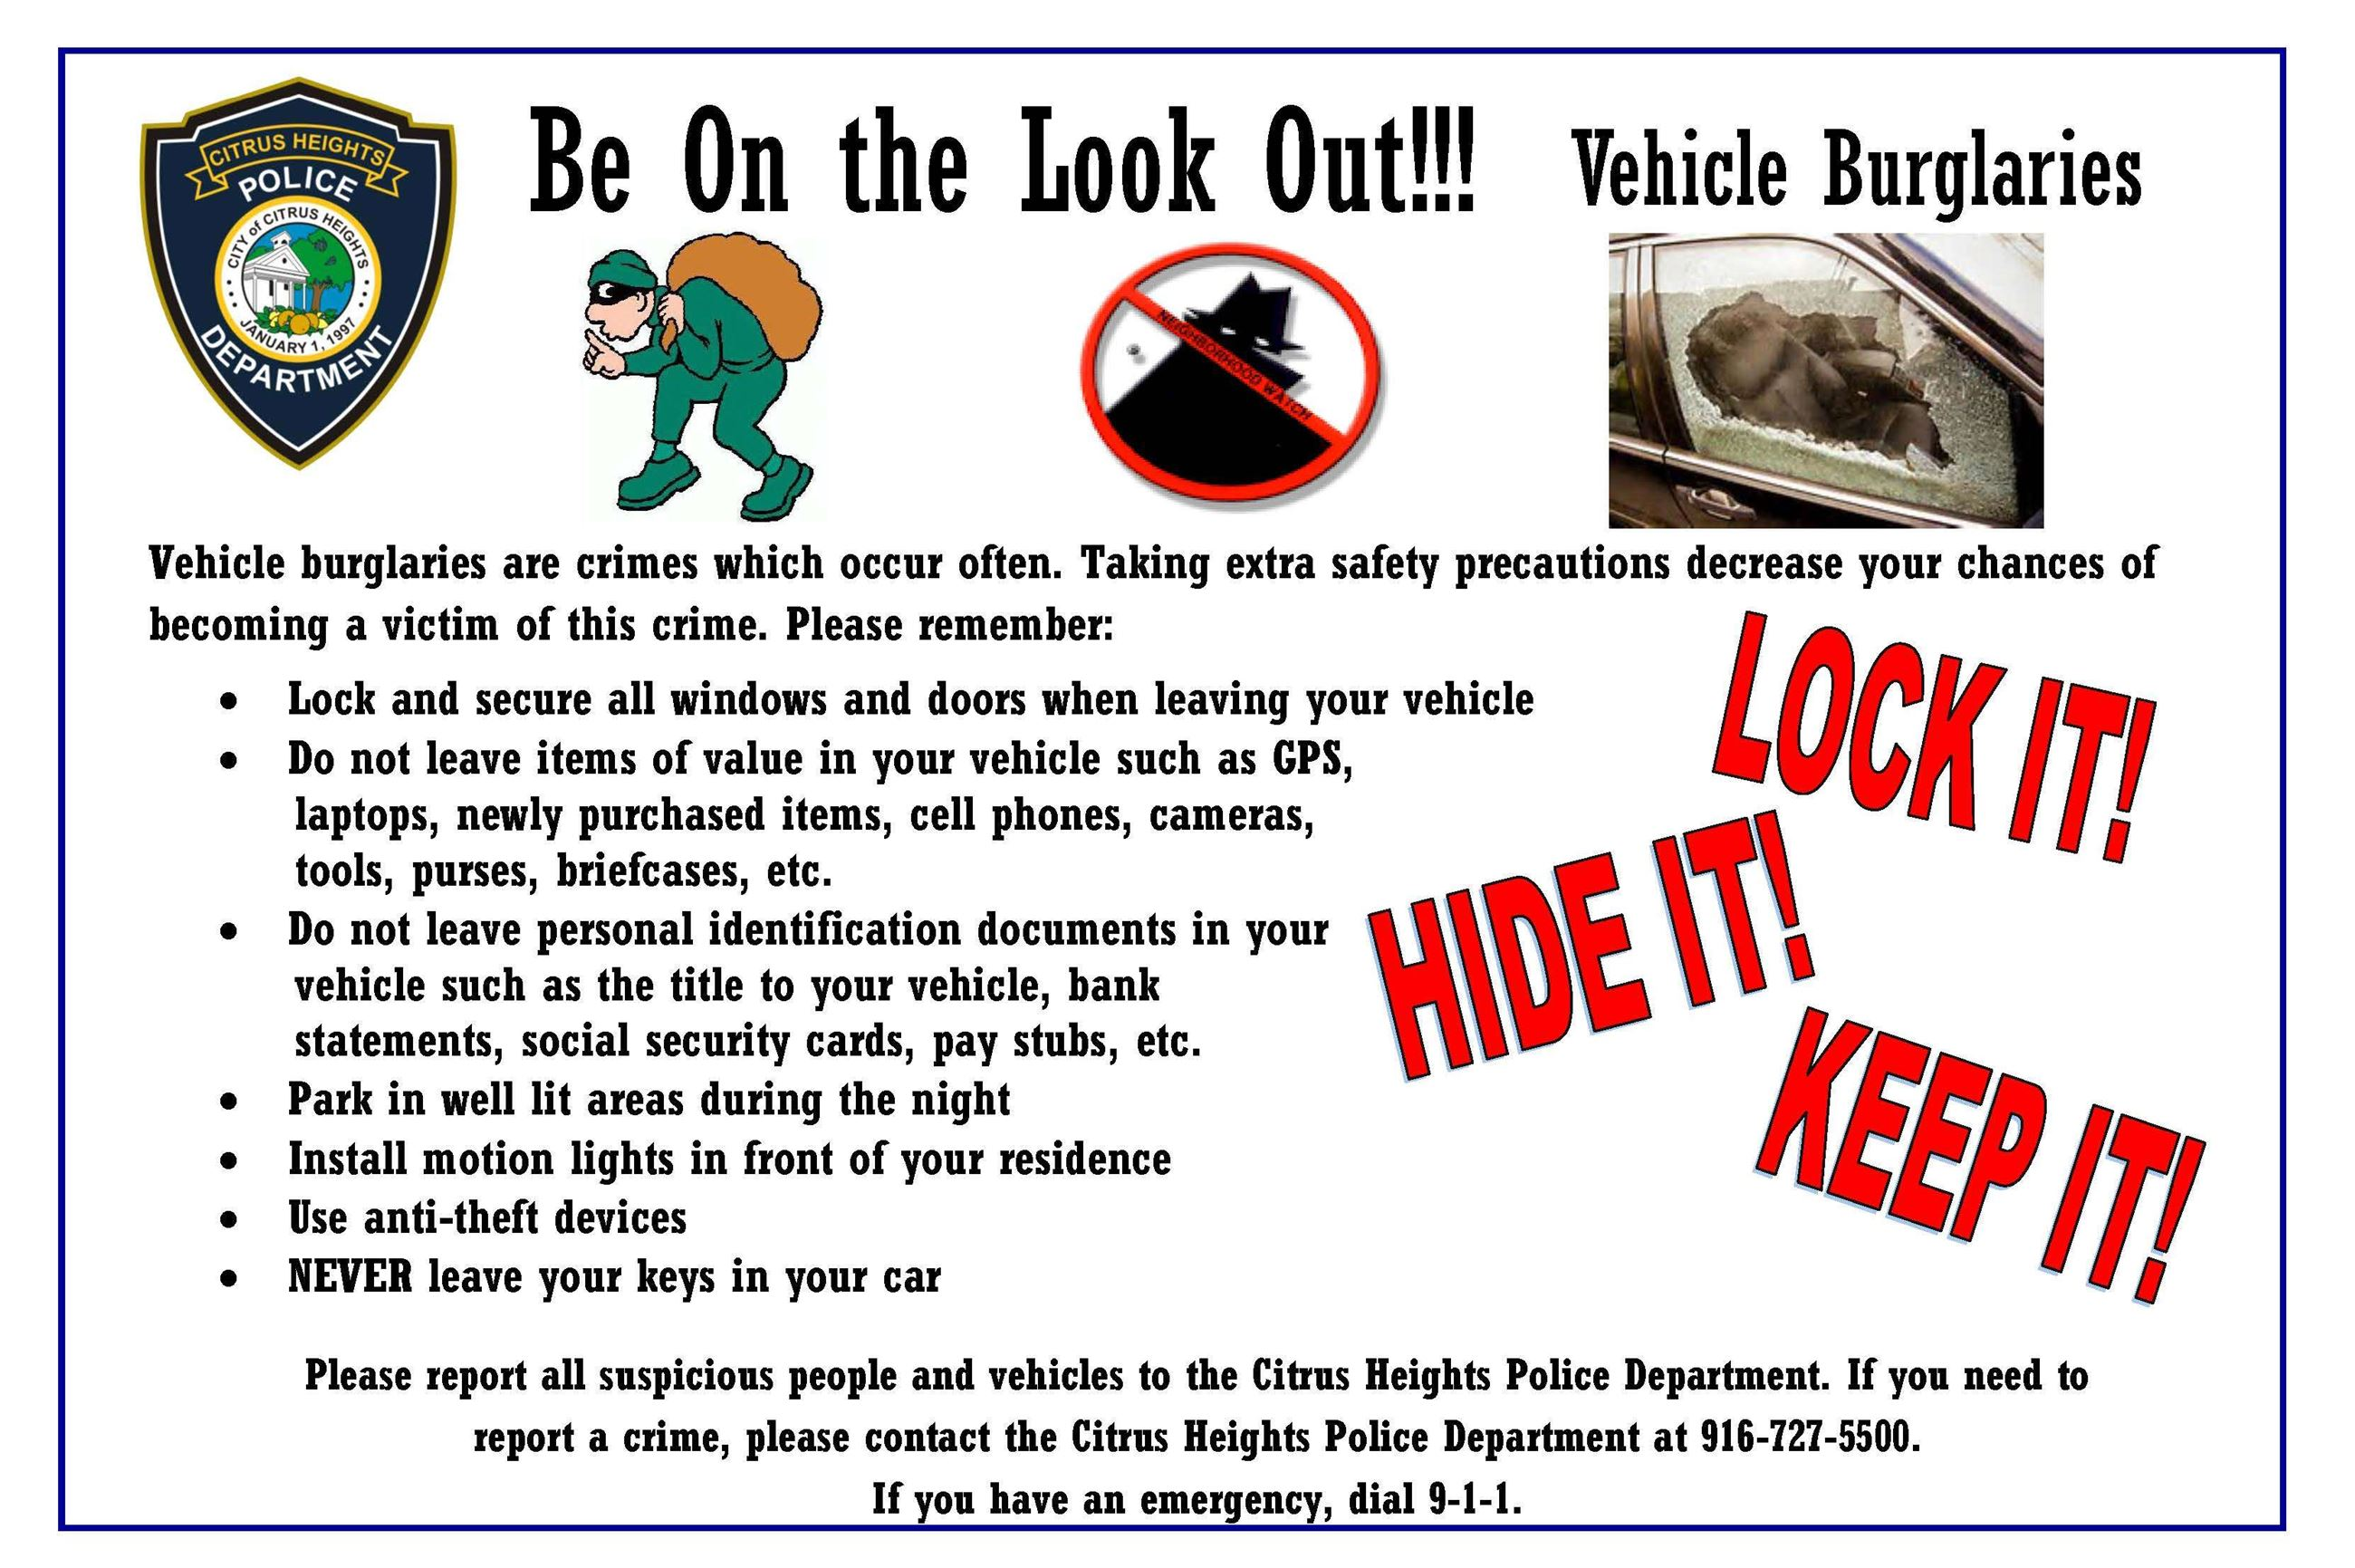 vehicle burglary tips